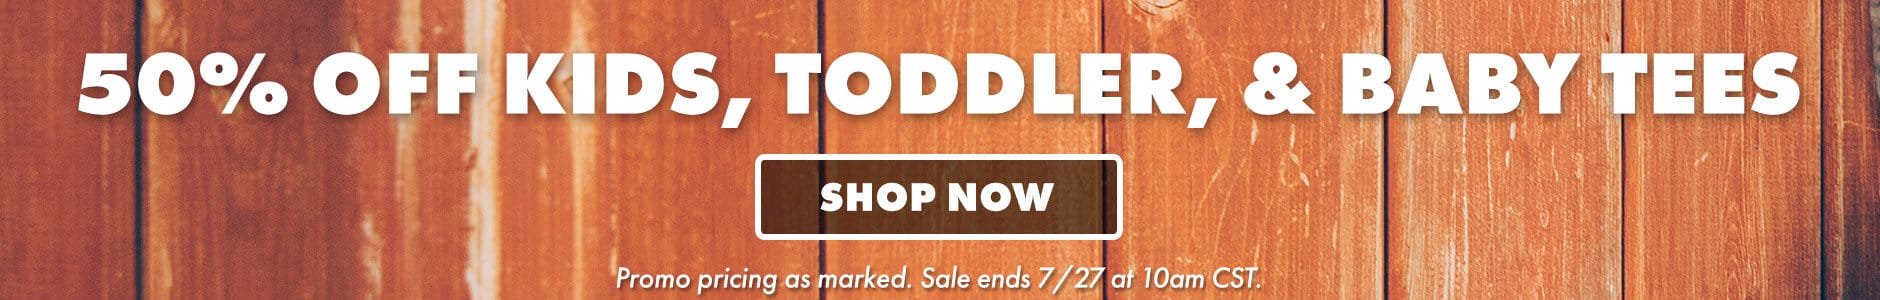 50% off kids, toddler, & baby tees. Shop now. Promo pricing as marked. Sale ends 7/27 at 10am CST.